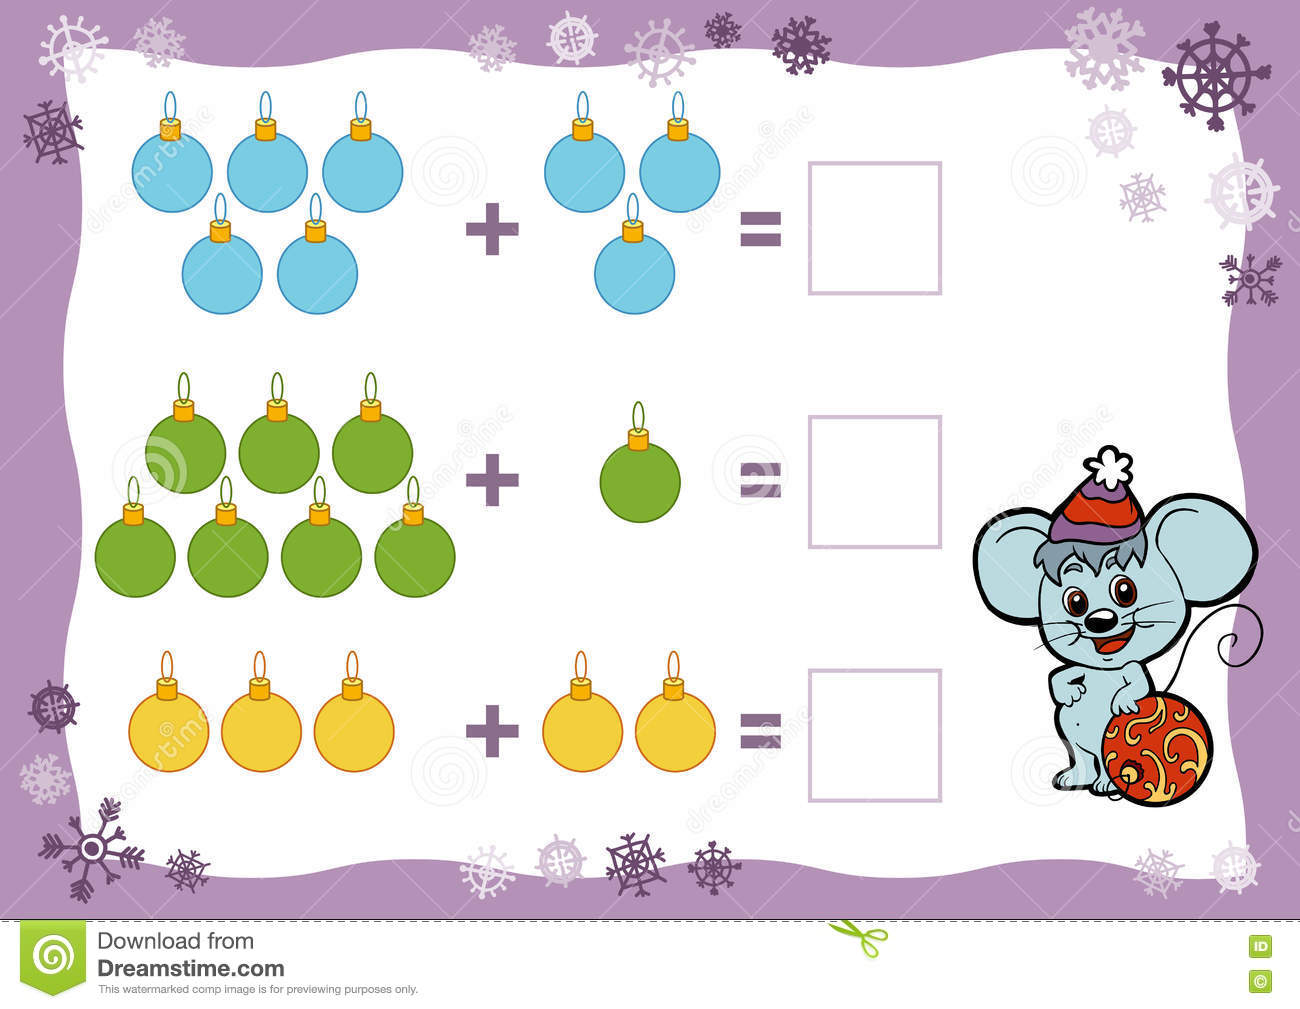 Counting Game For Children Addition Worksheets Christmas Toys Stock Vector